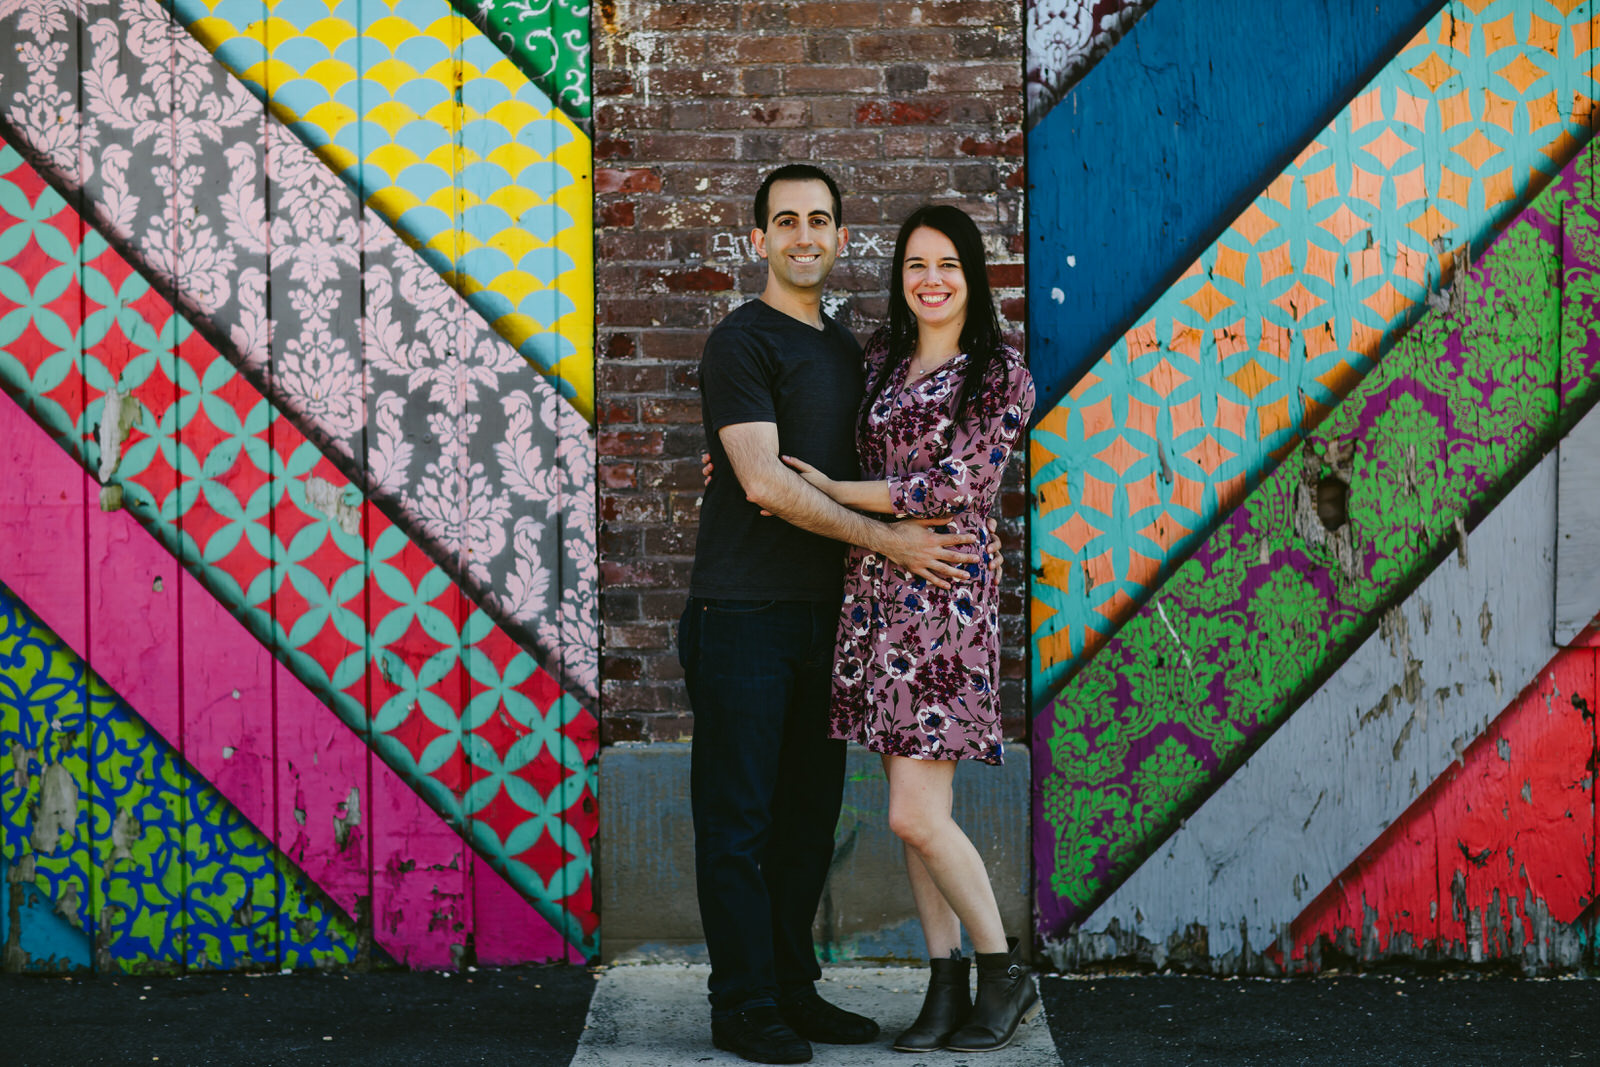 engagement-portraits-asbury-park-tiny-house-photo-5.jpg